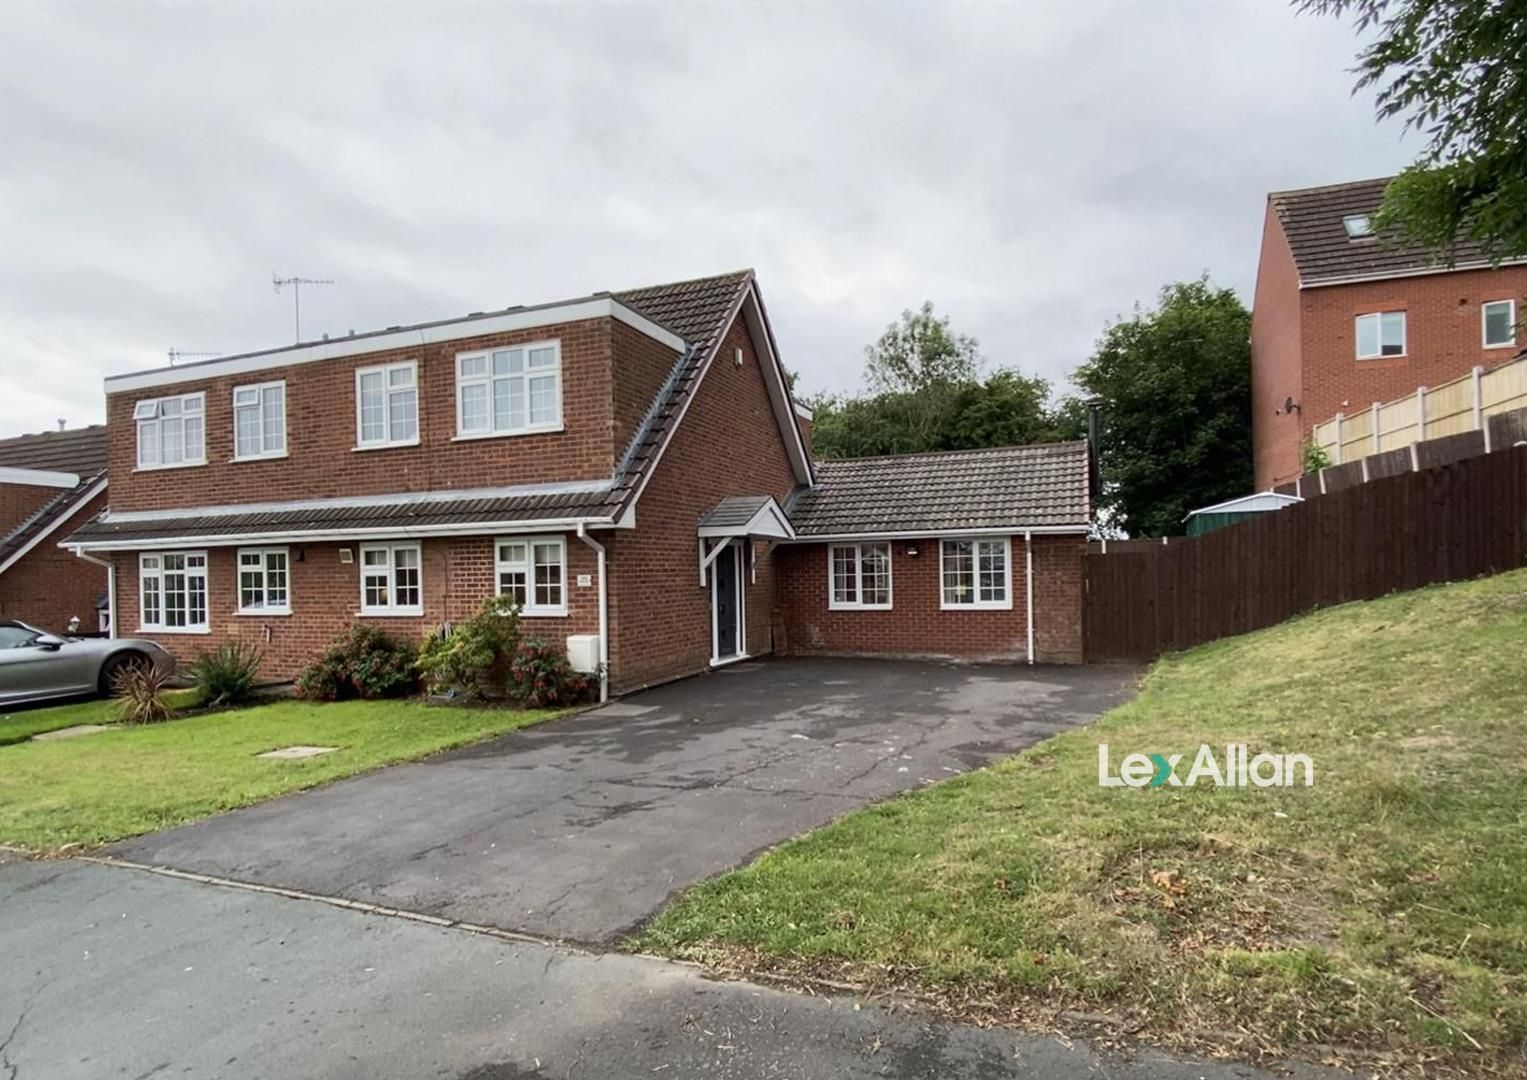 2 bed semi-detached for sale in Quarry Bank, DY5